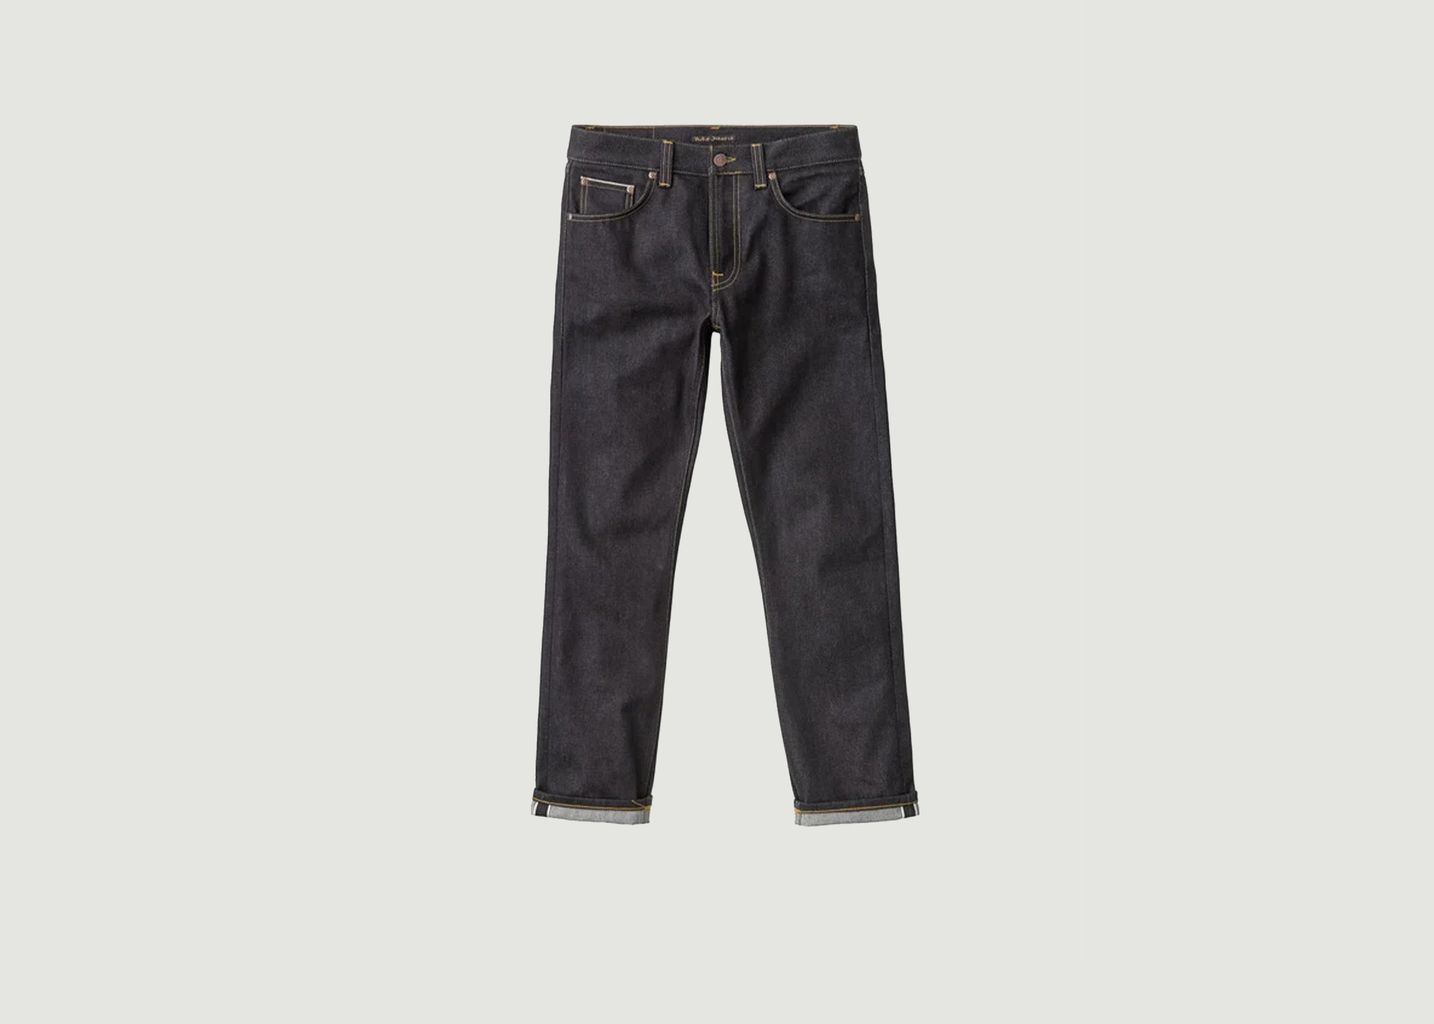 Jean Gritty Jackson Dry Maze Selvage - Nudie Jeans